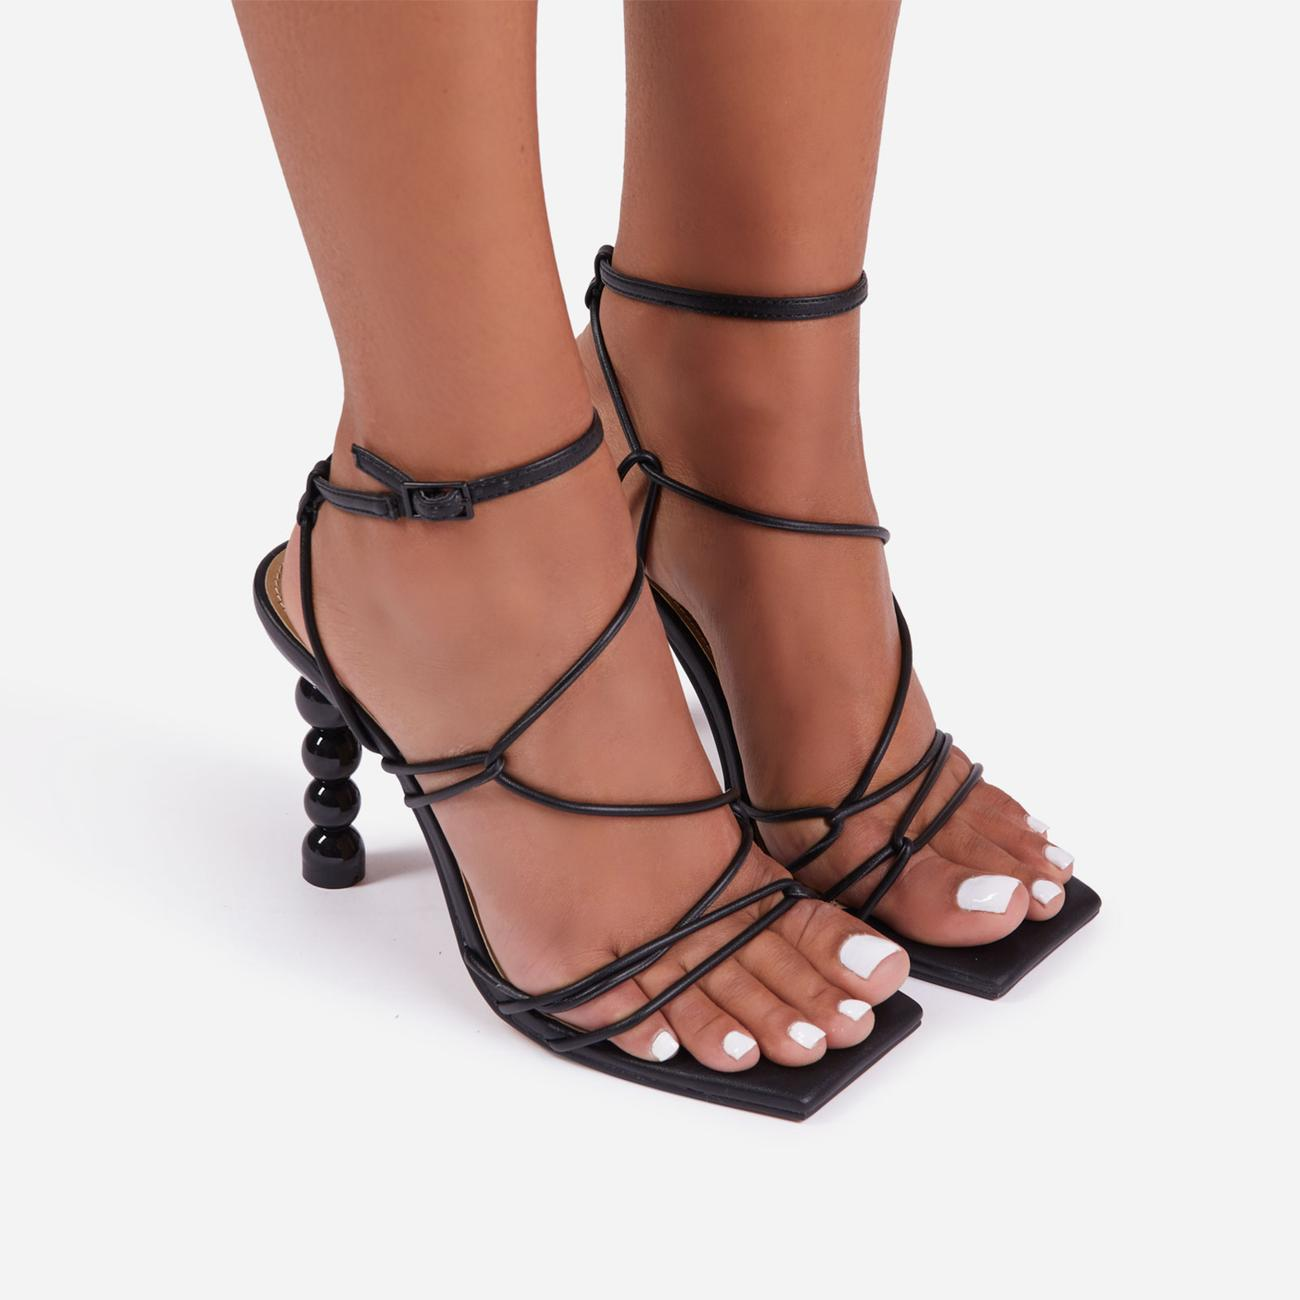 Mulberry Strappy Square Toe Sculptured Heel In Black Faux Leather Image 3